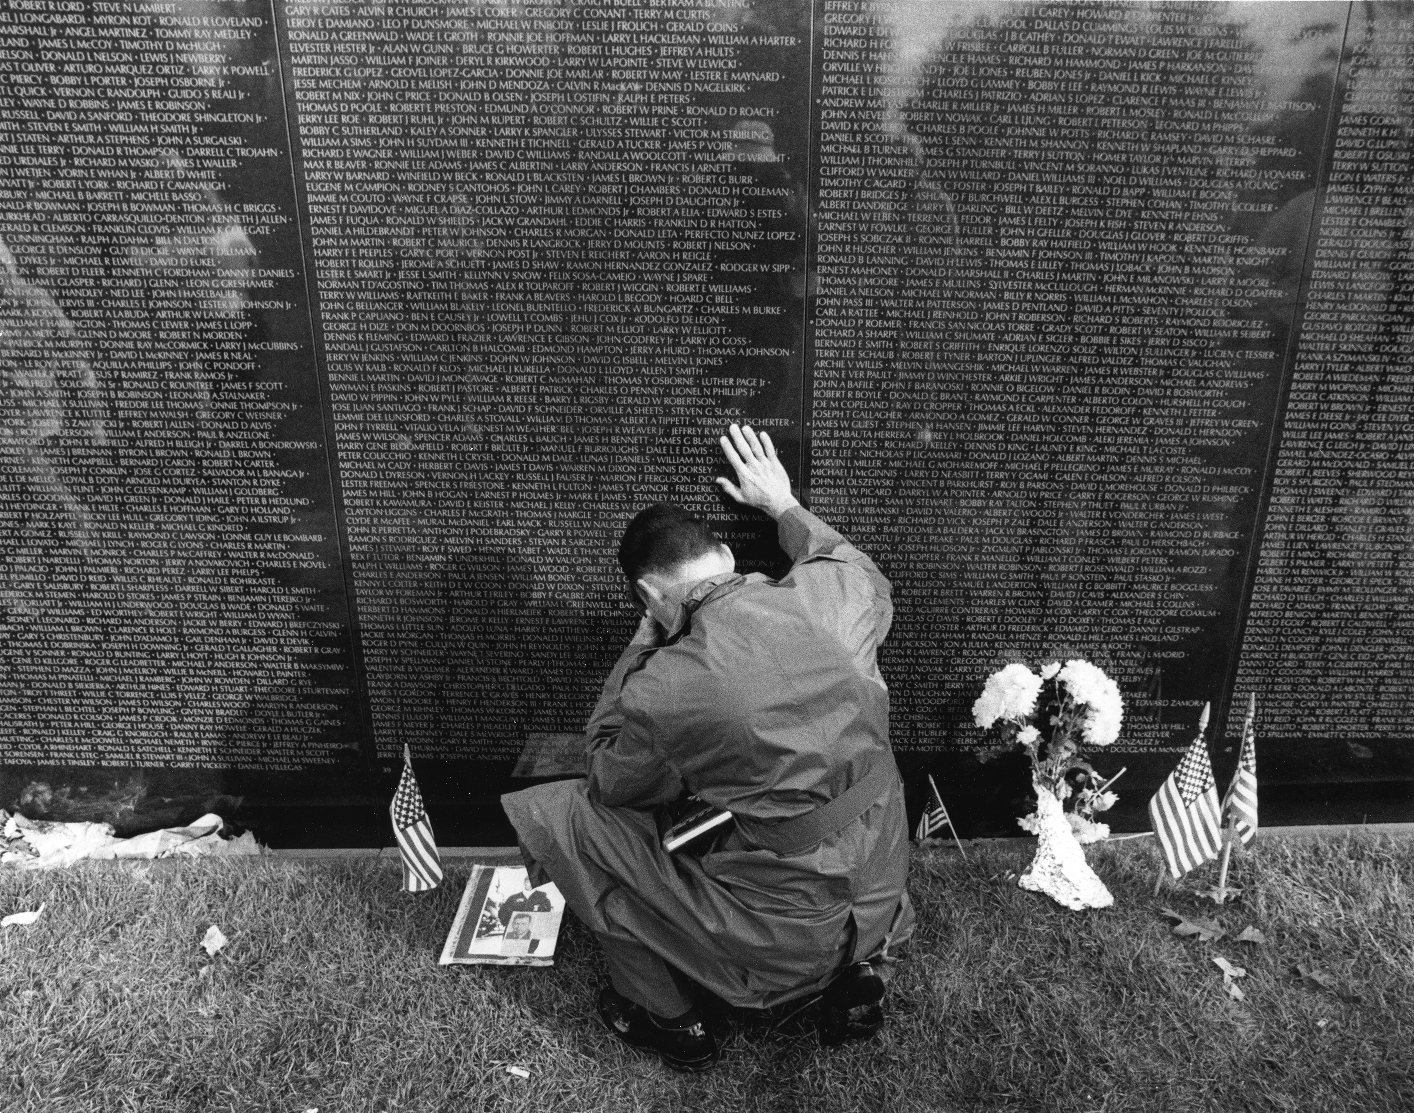 The Legacy - Our defeat in 1975. The veterans who came home, unwelcomed. The refugees who arrived, unwelcomed.We need to know and understand what happened, and why. The Vietnam war is still shaping our nation.